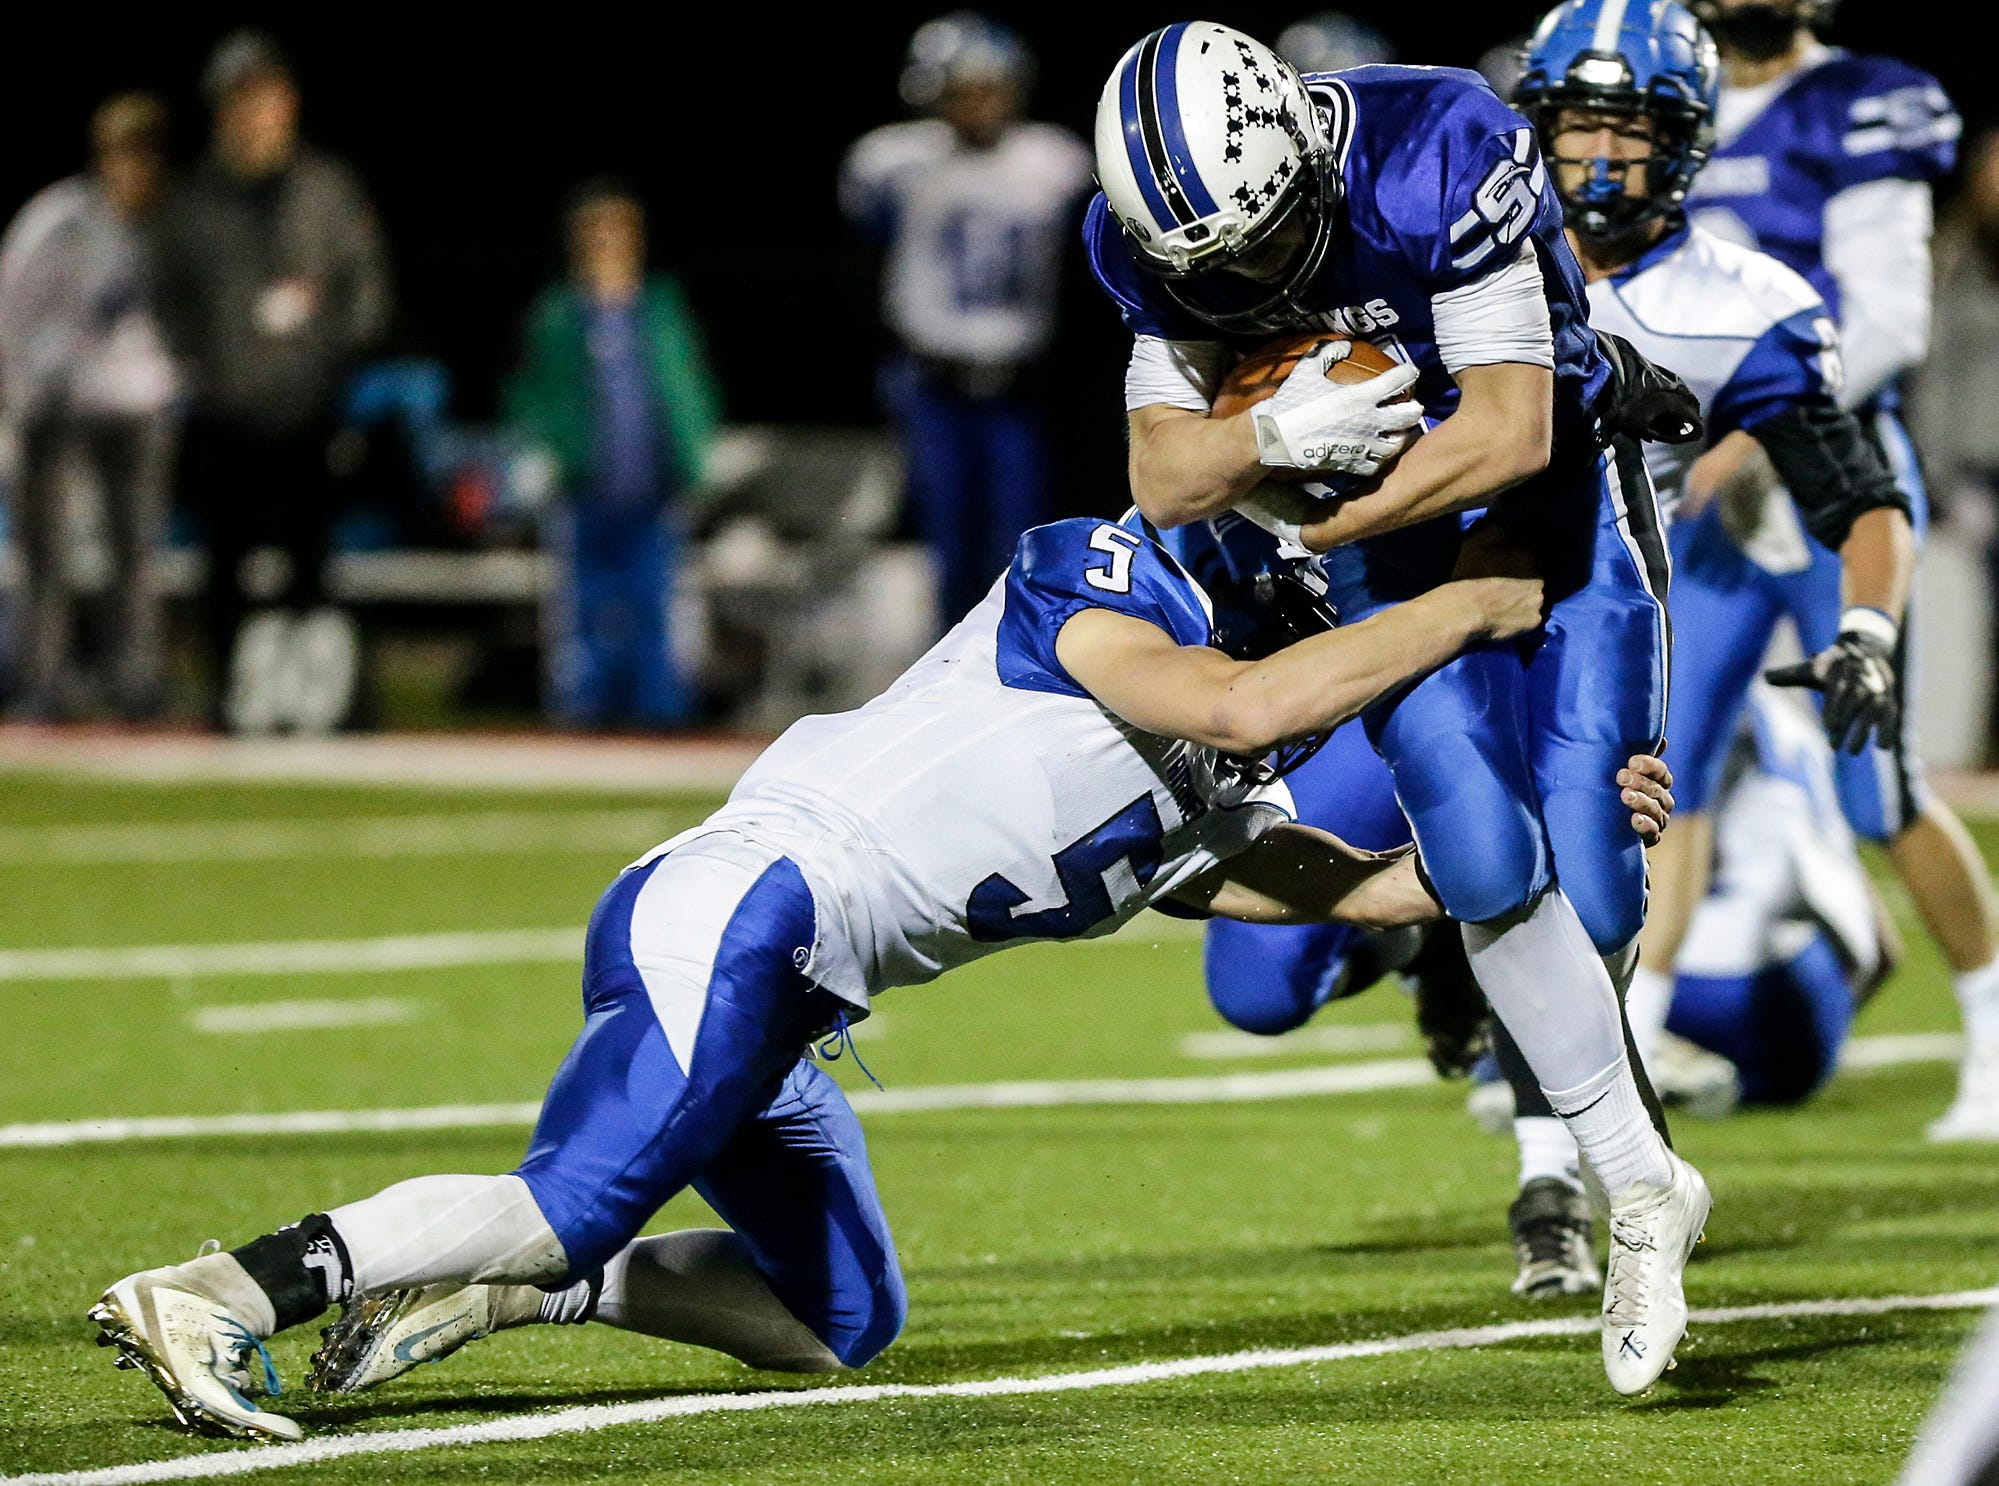 St. Mary's Springs Academy football's Steve Hoepfner runs the ball against Amherst High School's Josh Rieck Friday, November 2, 2018 during their WIAA division 5 level 3 playoff game played in Lomira, Wisconsin. Springs won the game 12-0. Doug Raflik/USA TODAY NETWORK-Wisconsin